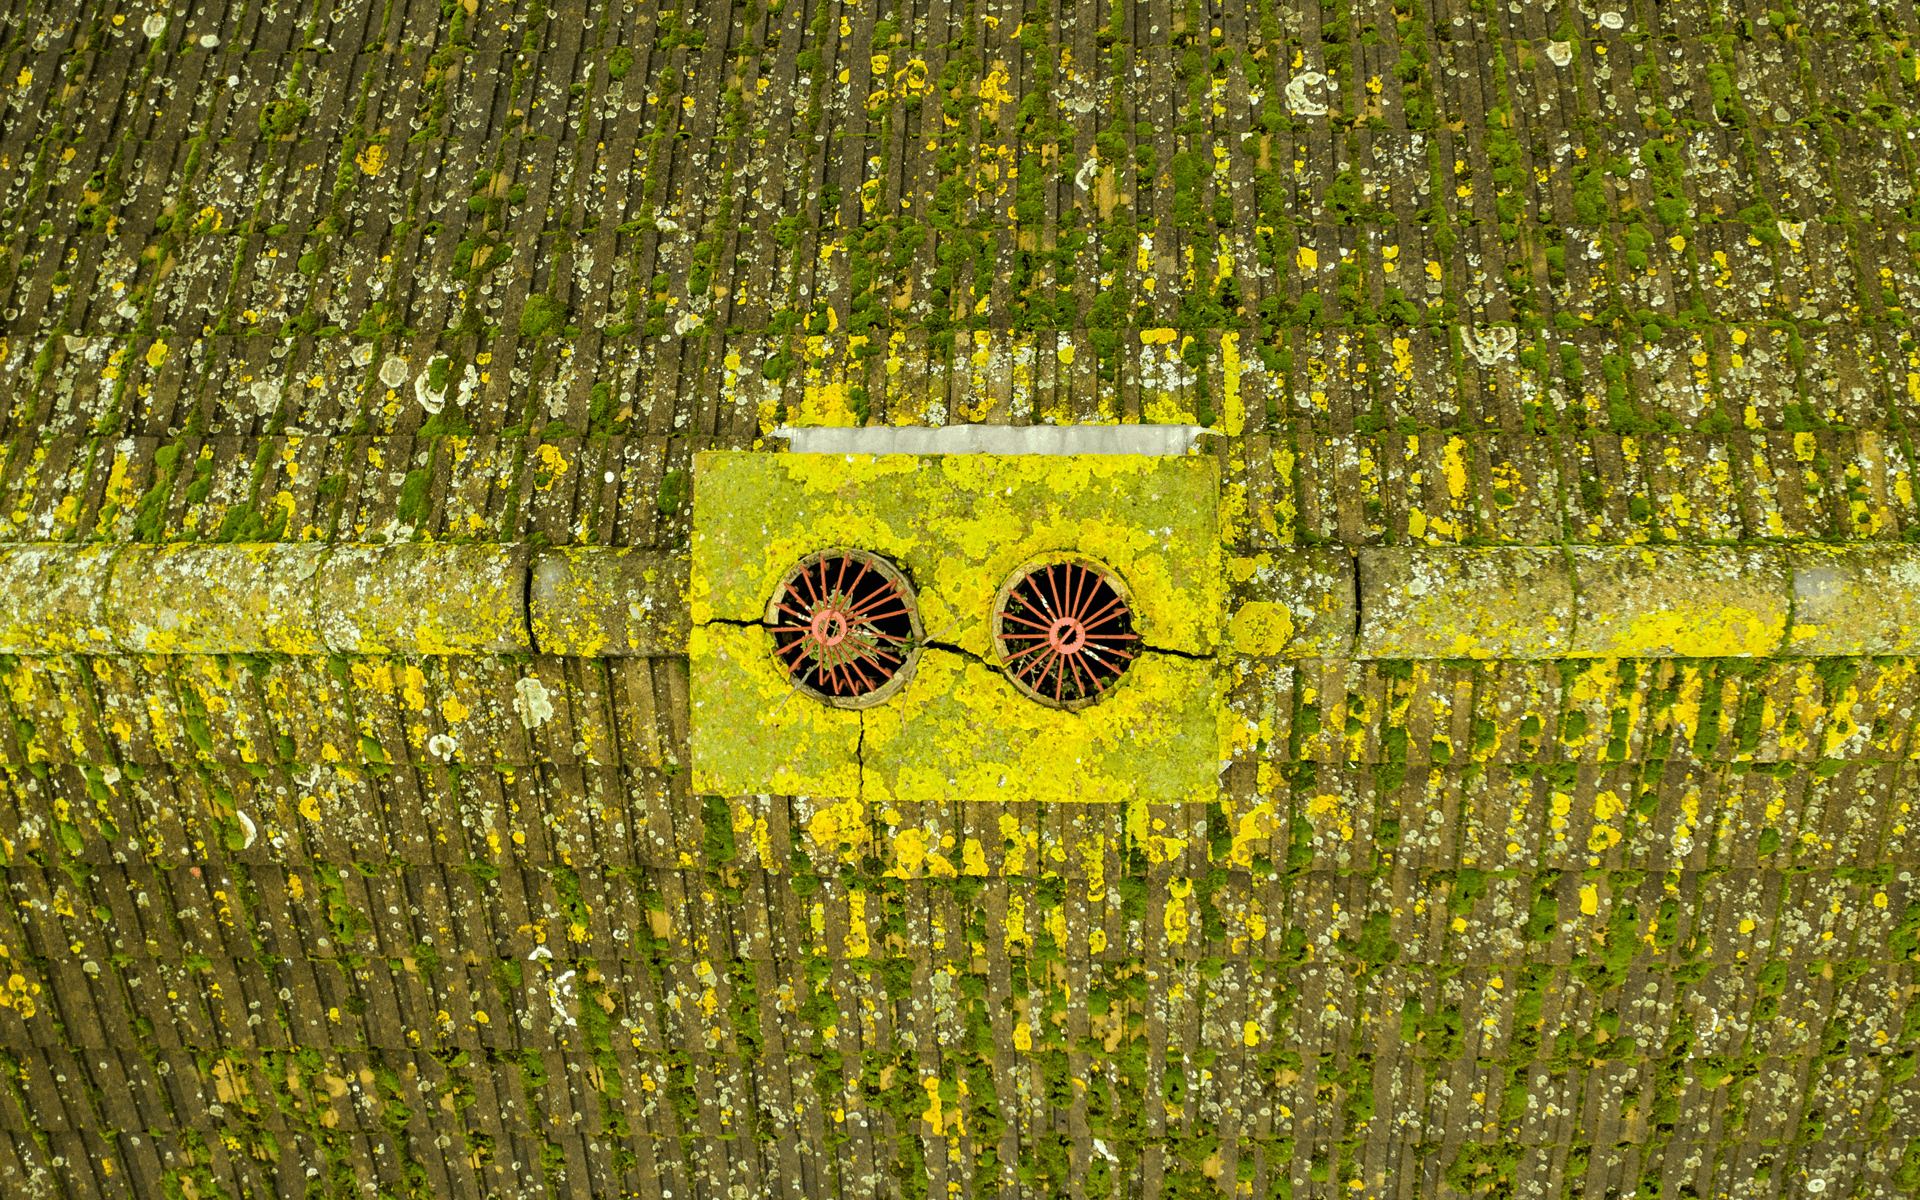 """Mavic 2 Pro"" aerial drone photo of a chimney from conducting an aerial roof survey in Newent, Wales"